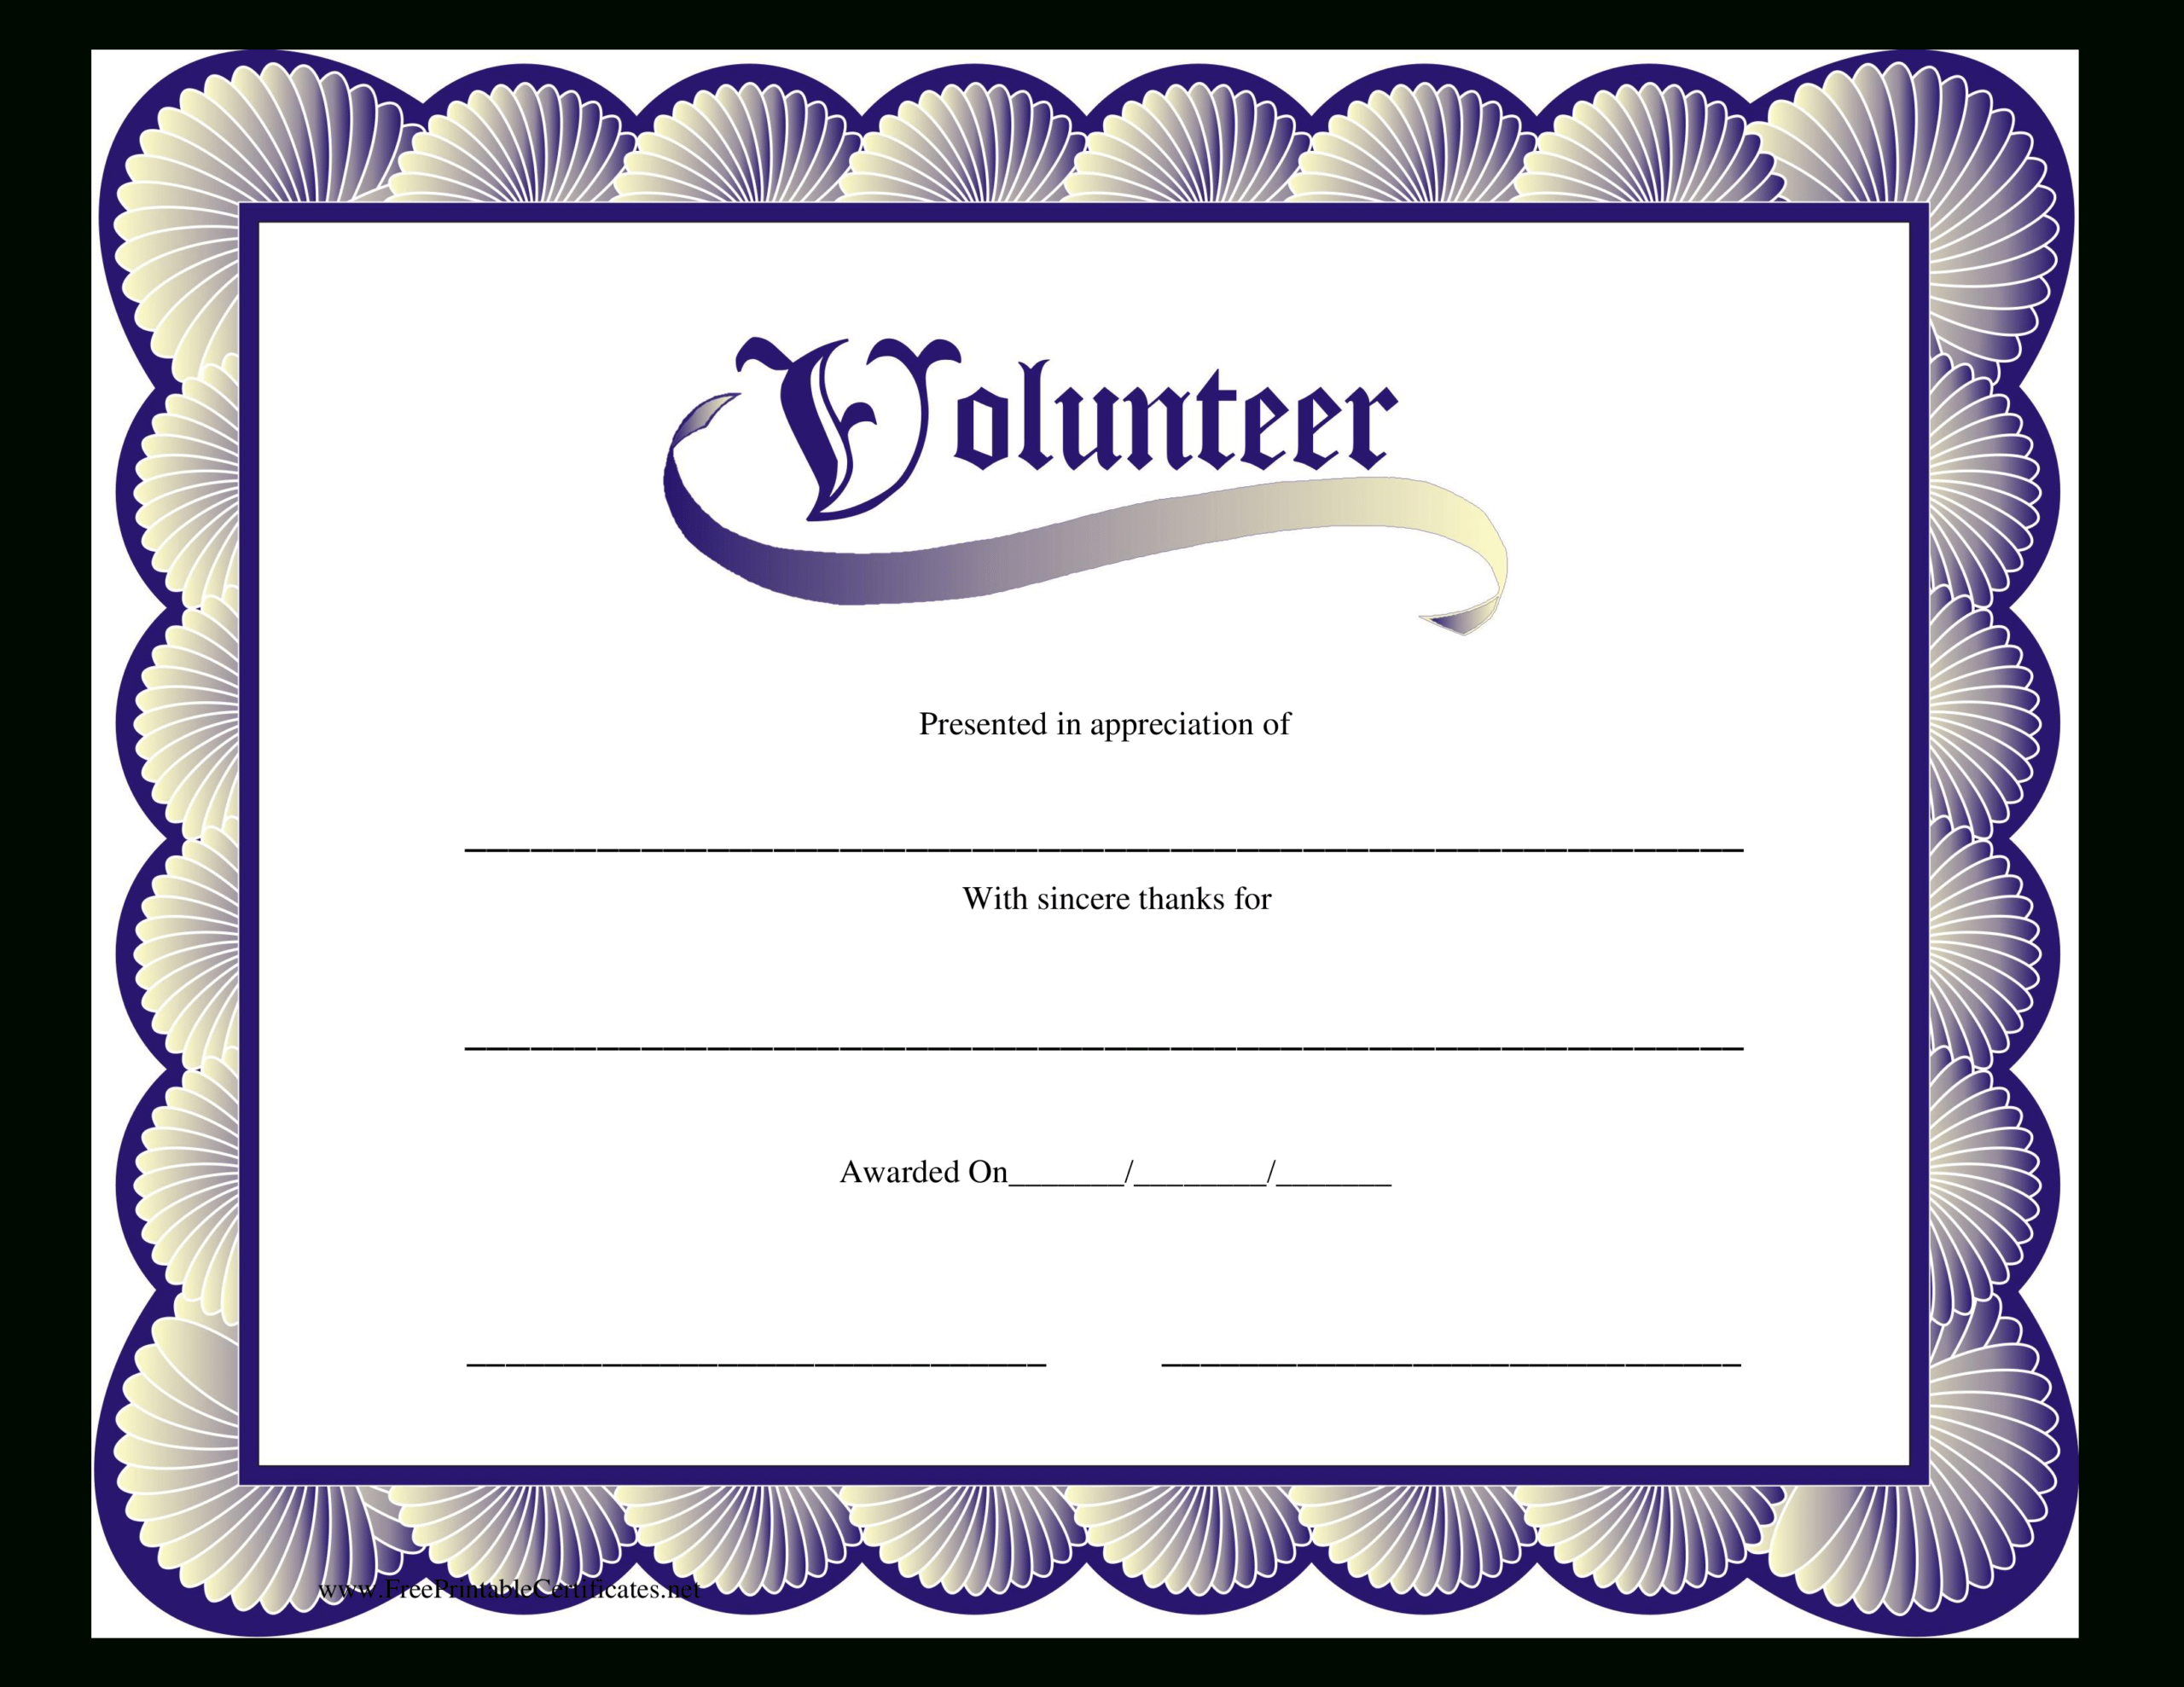 Volunteer Certificate | Templates At Allbusinesstemplates In Volunteer Certificate Templates